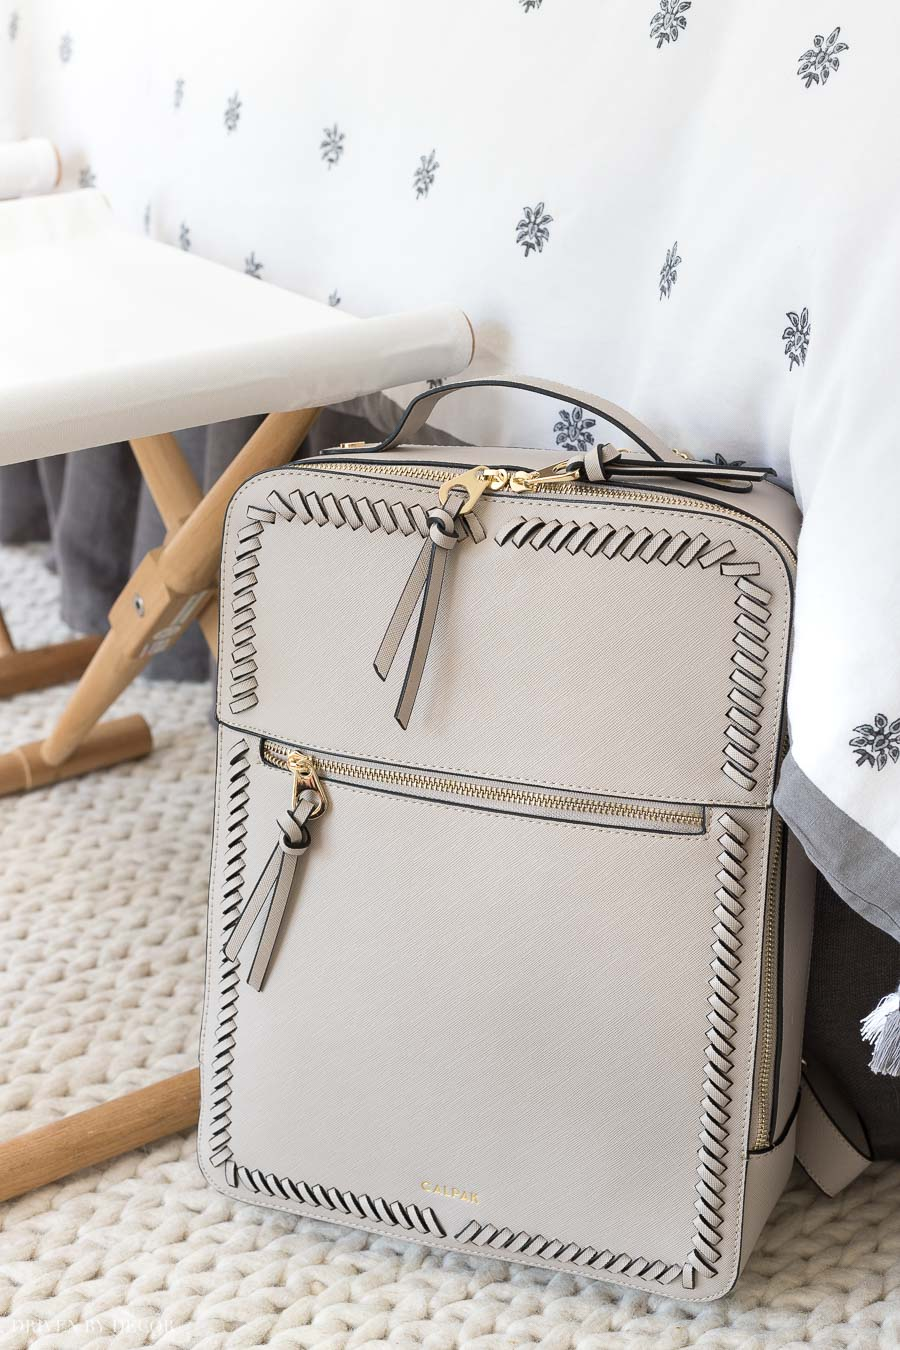 LOVE this stylish laptop backpack that's roomy enough to hold a laptop and a whole lot more!